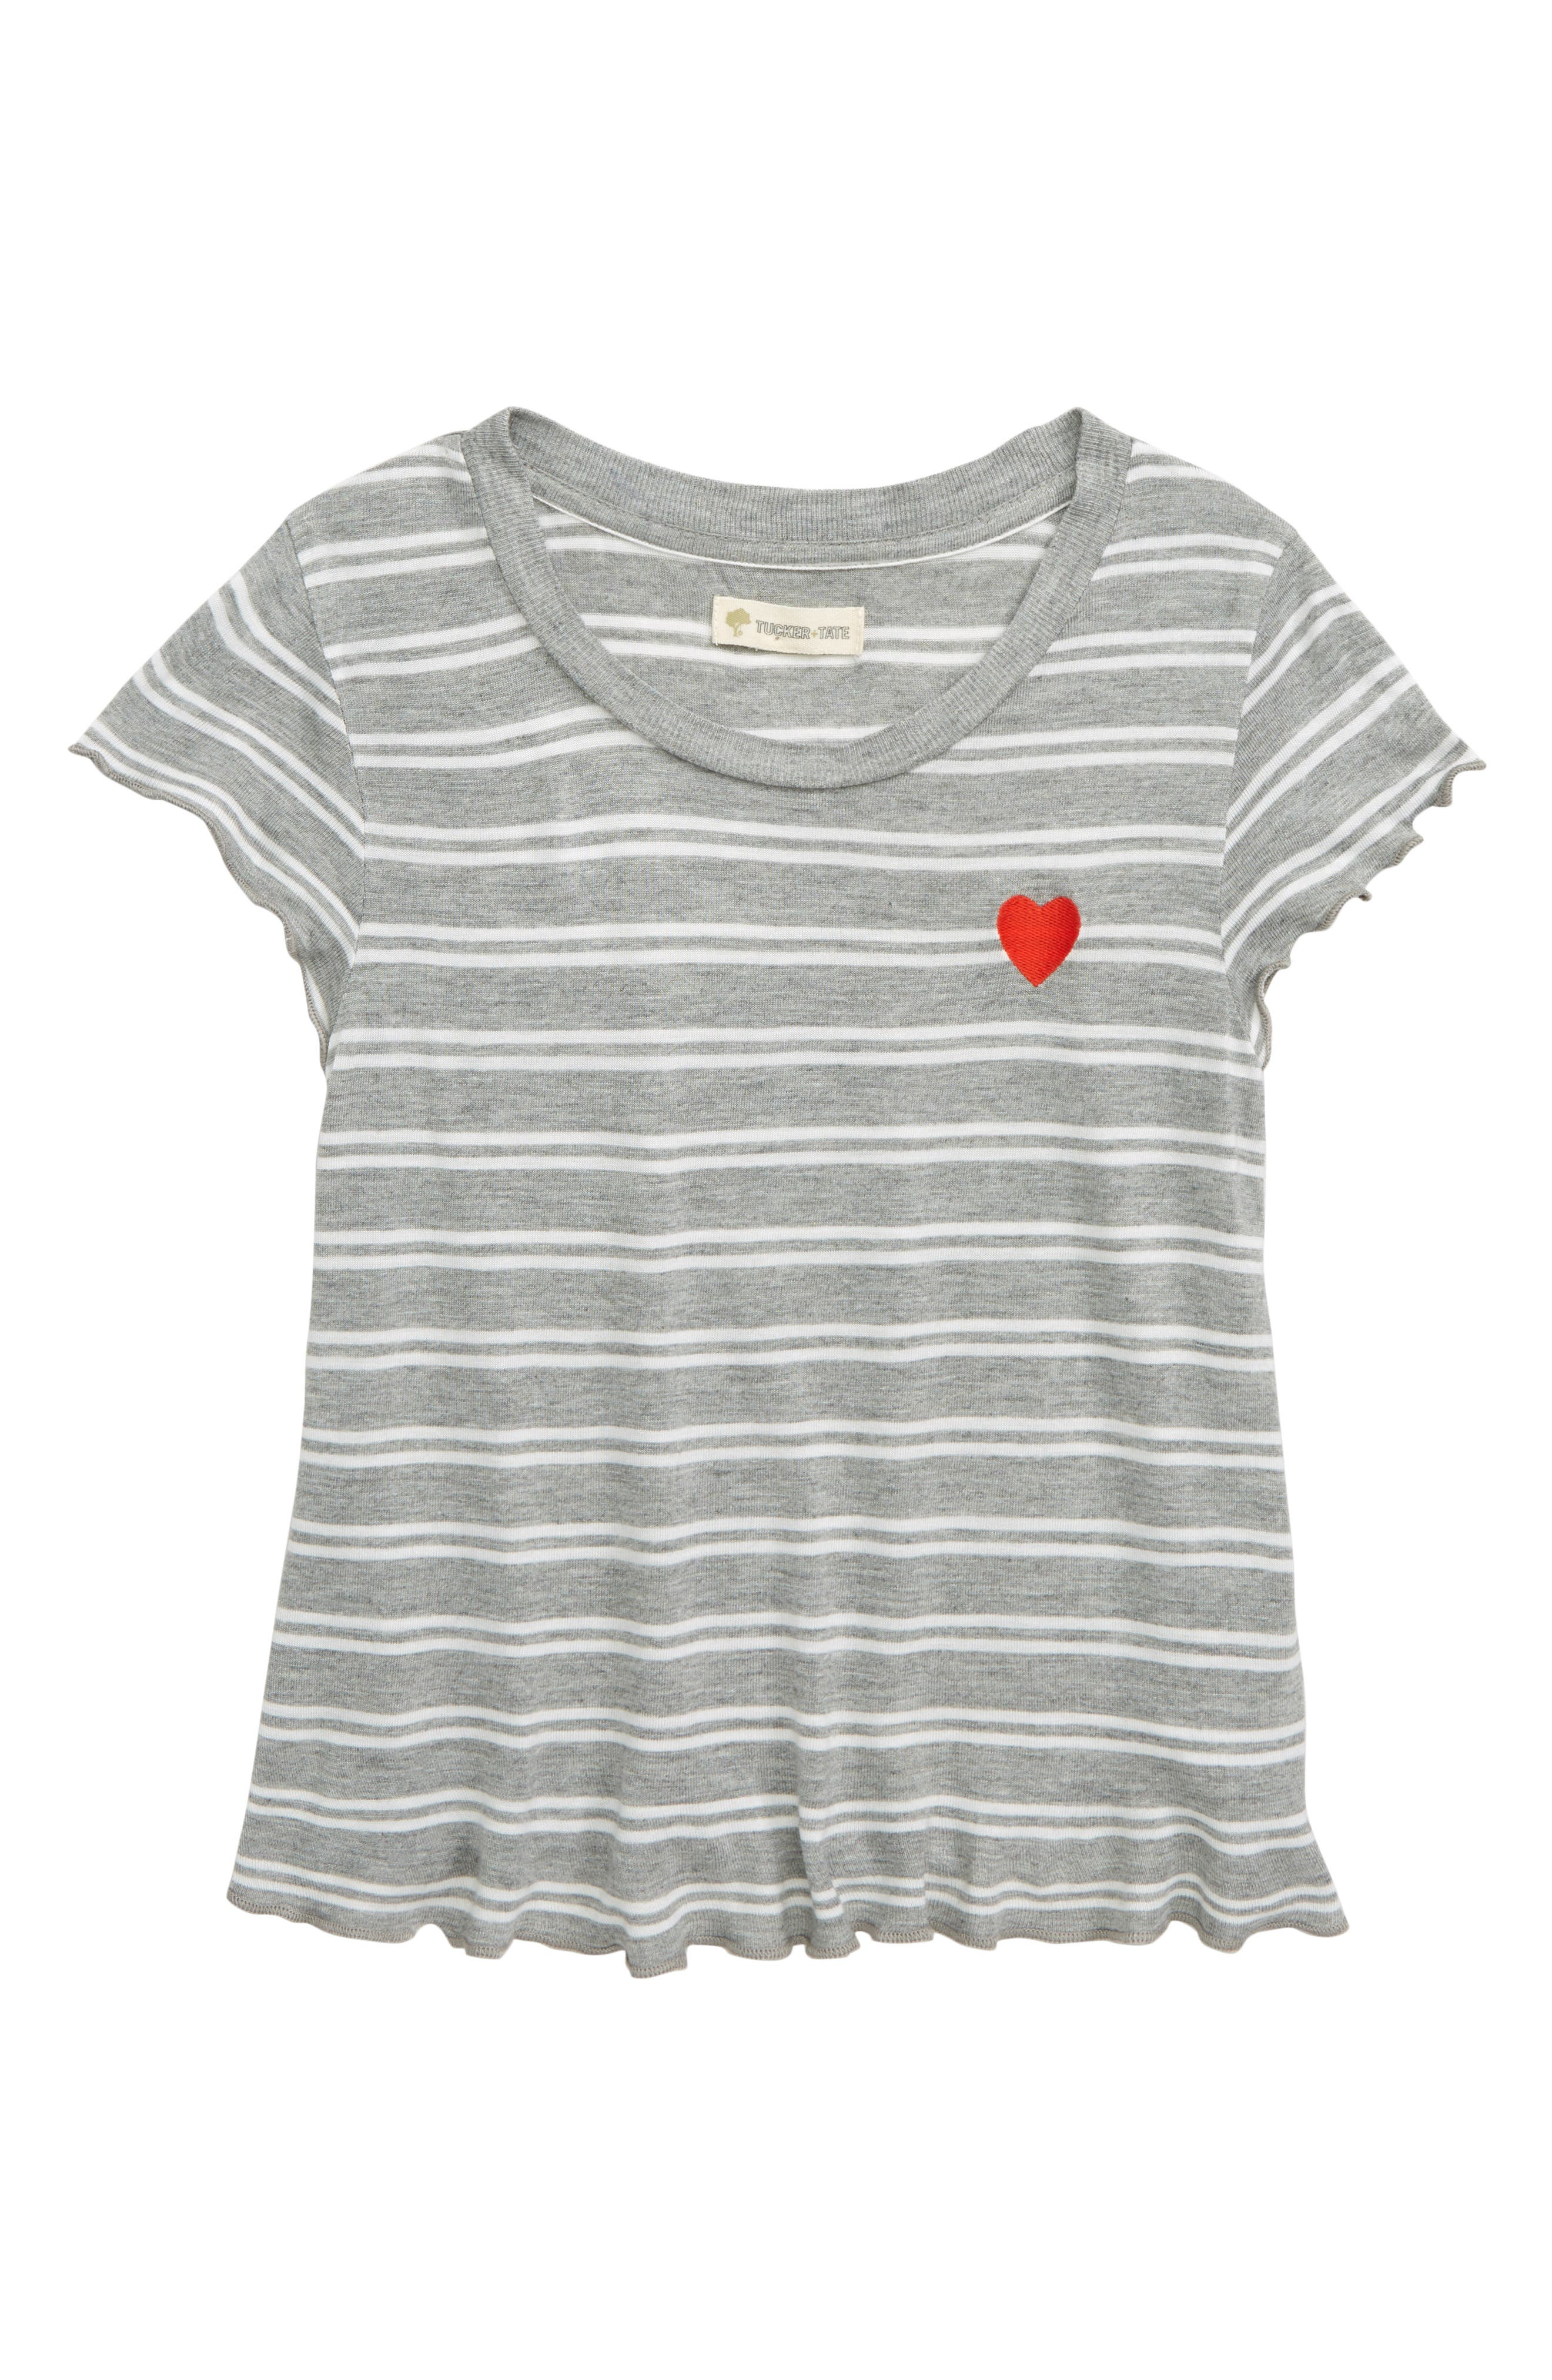 TUCKER + TATE, Embroidered Stripe Tee, Main thumbnail 1, color, GREY MEDIUM HEATHER STRIPE